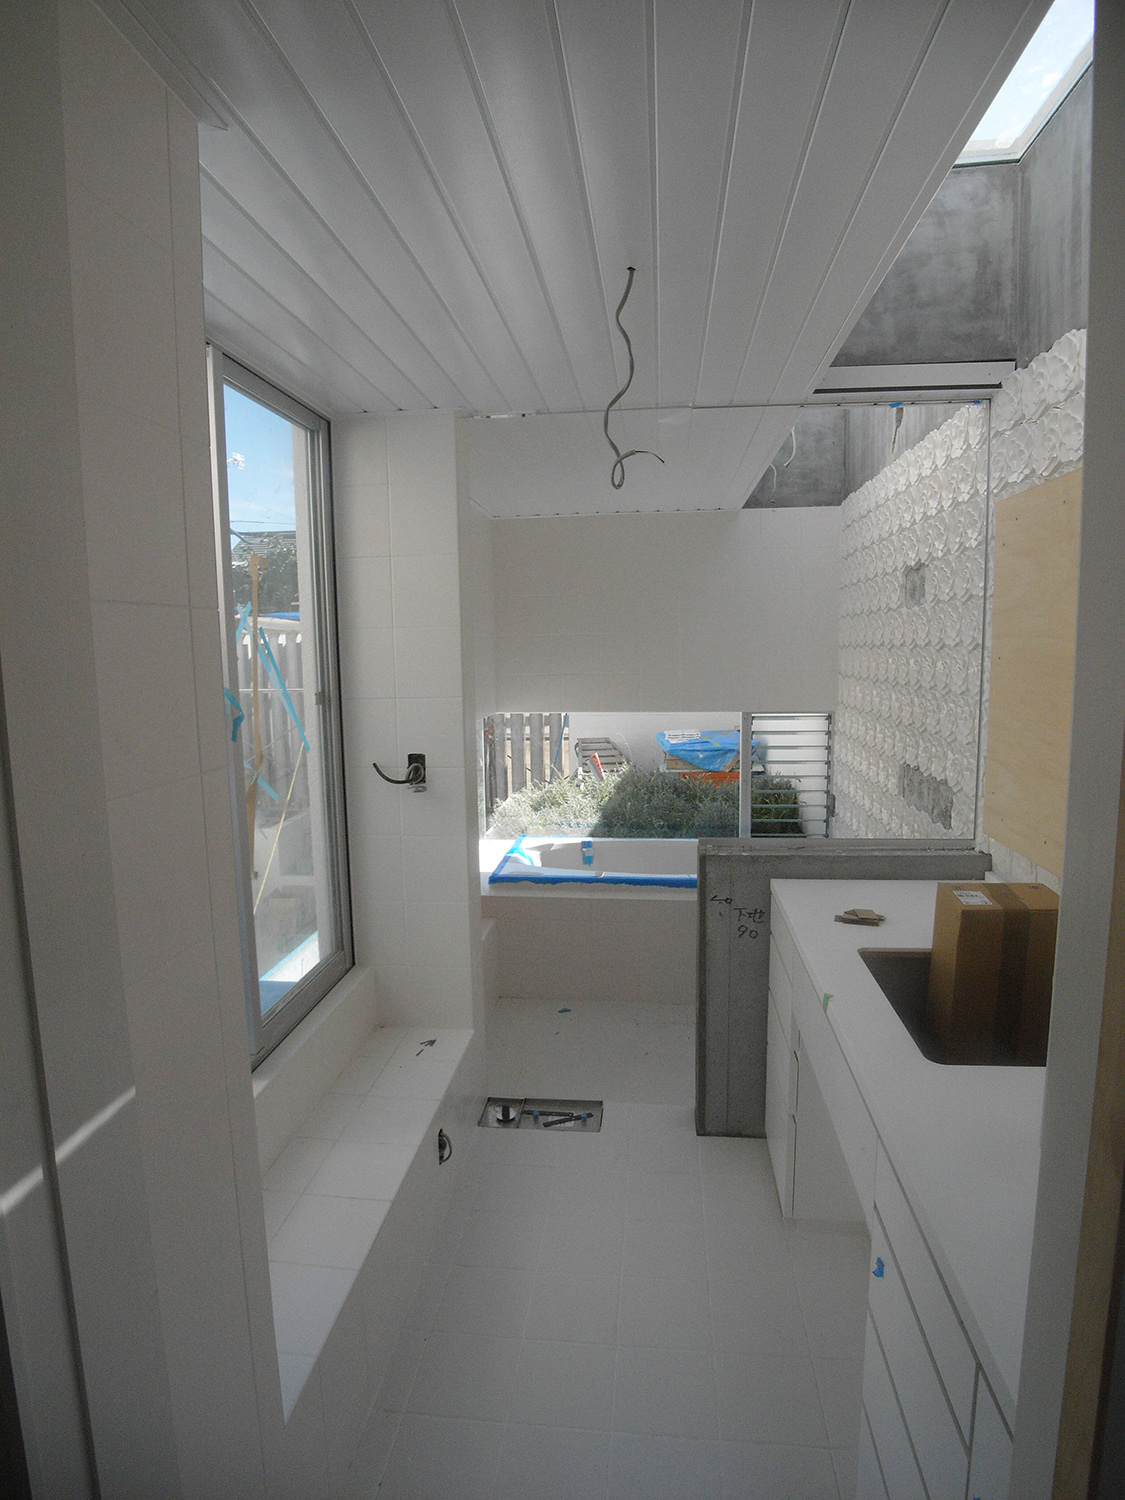 Bathroom wash. Clean space based on white. The wall tiles were designed by the designers.